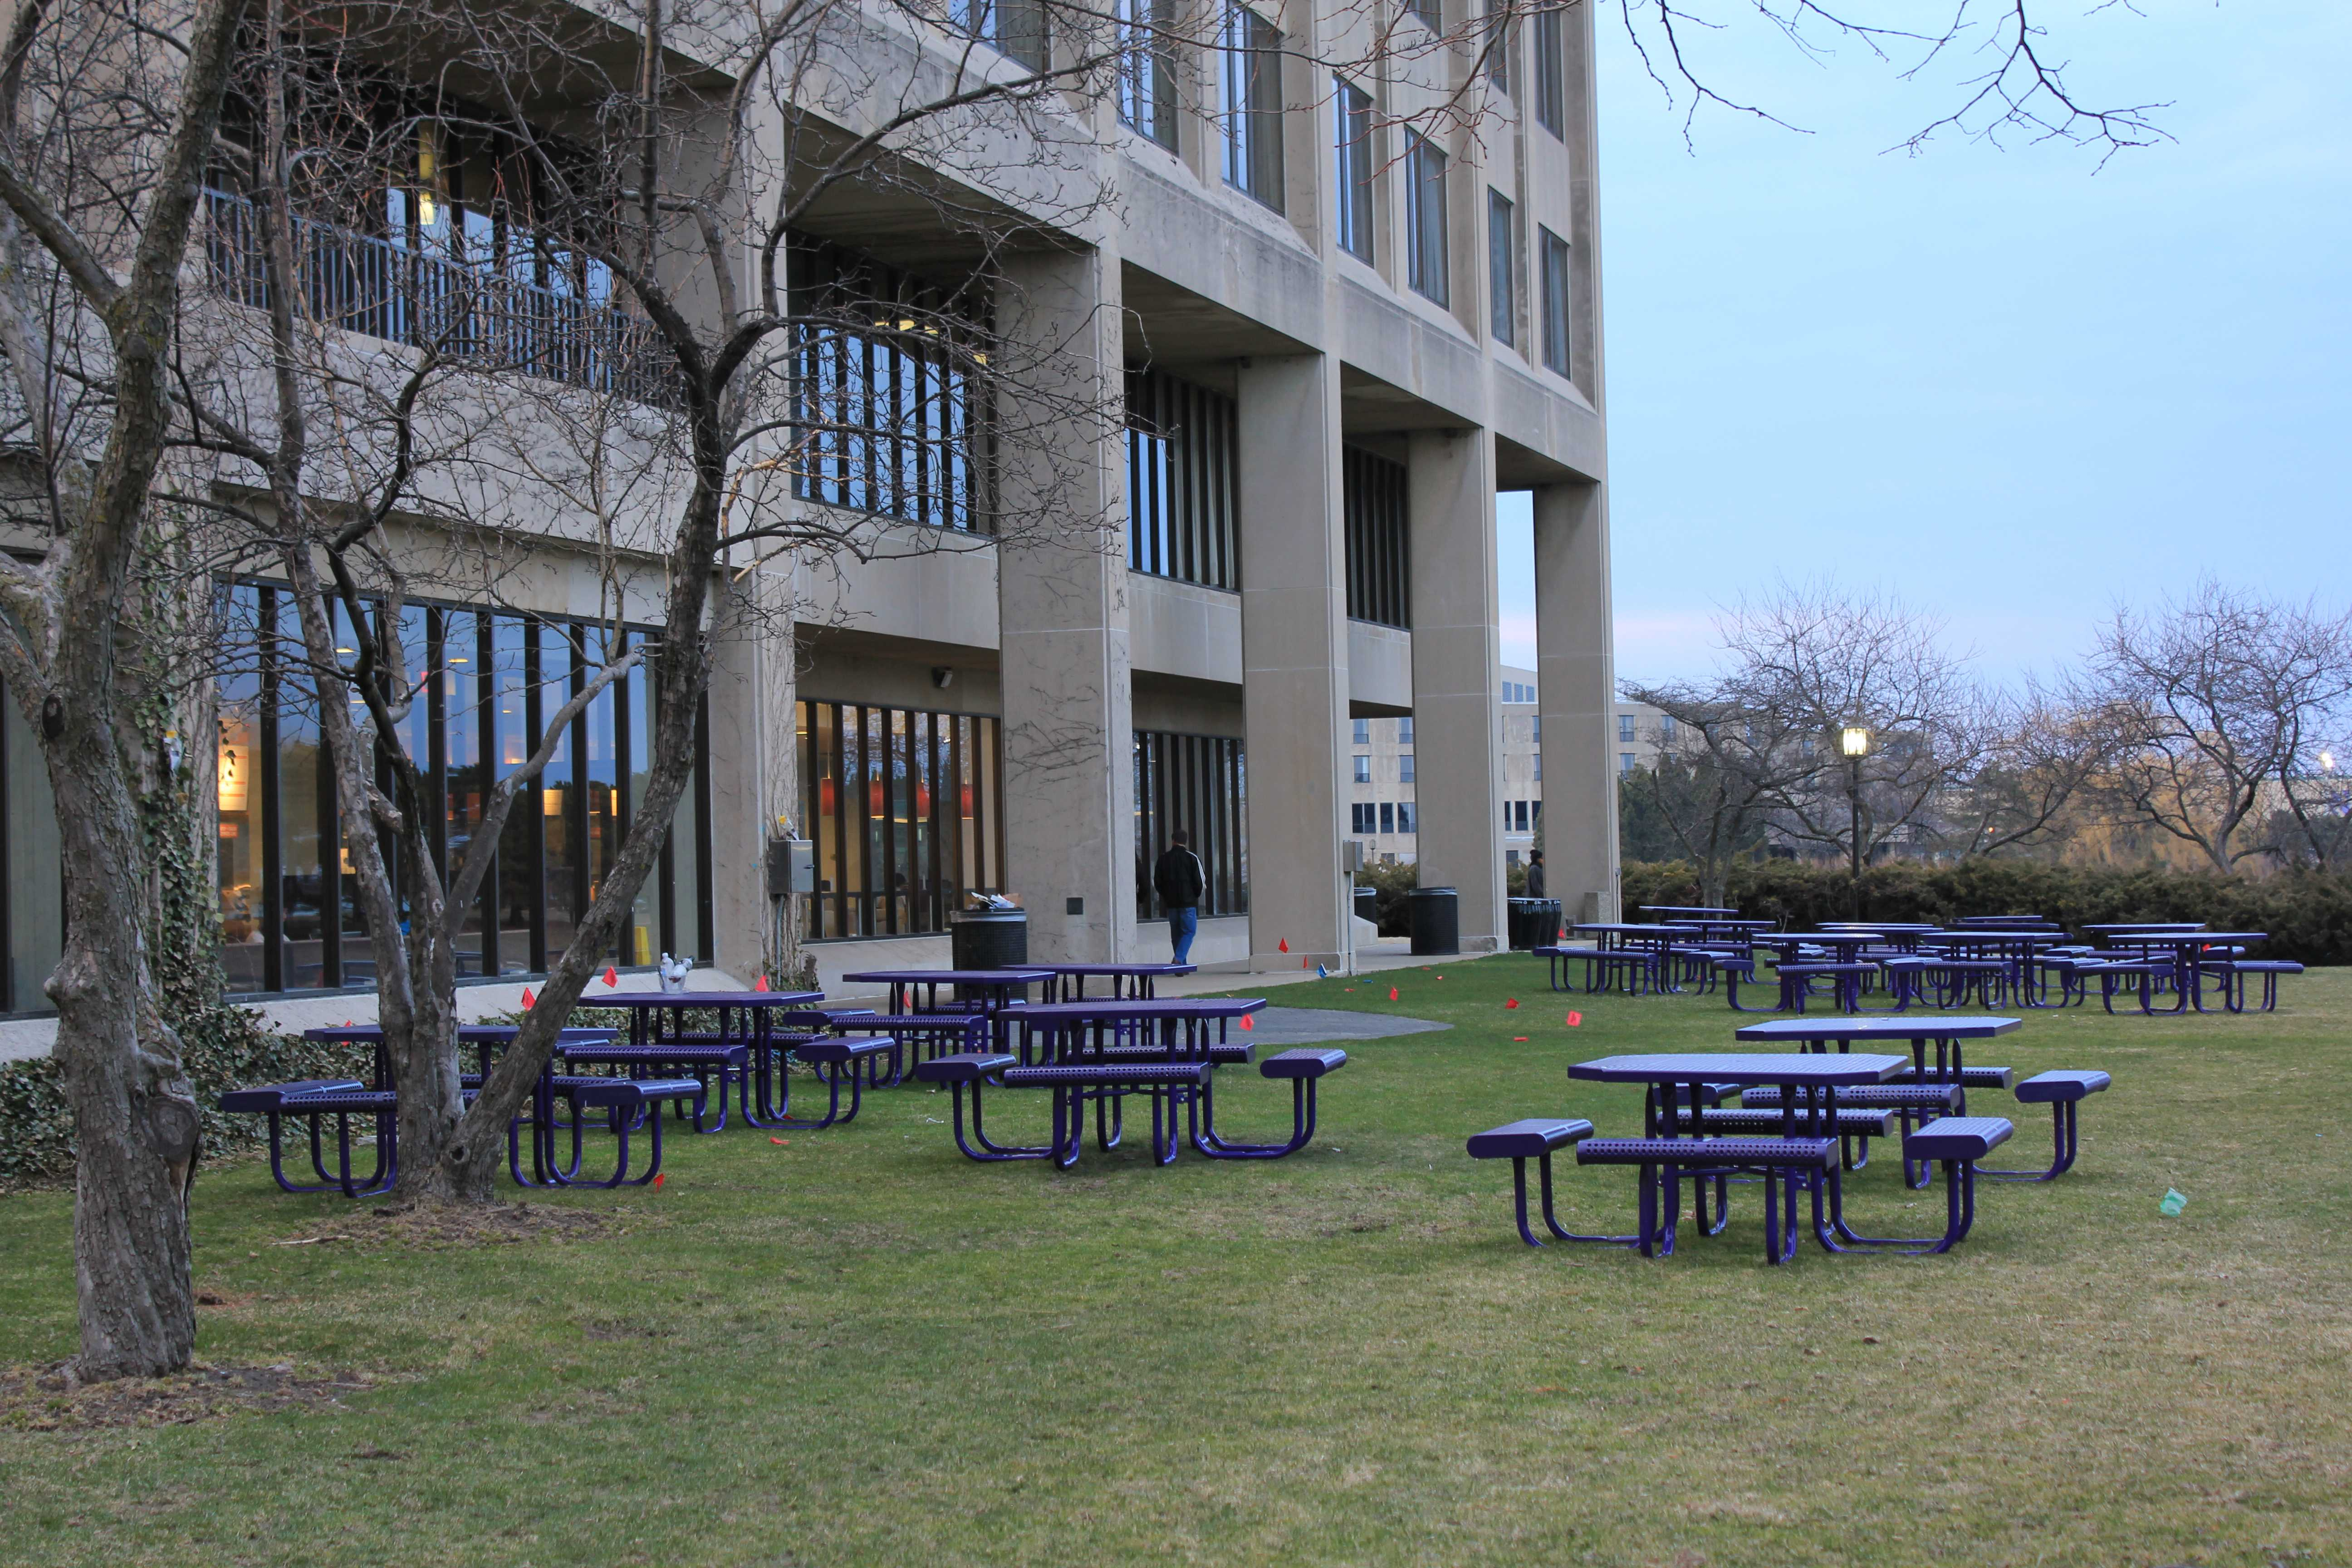 More picnic tables and benches will be installed around campus after that proposal won $10,000 from ASG's 10K Initiative.